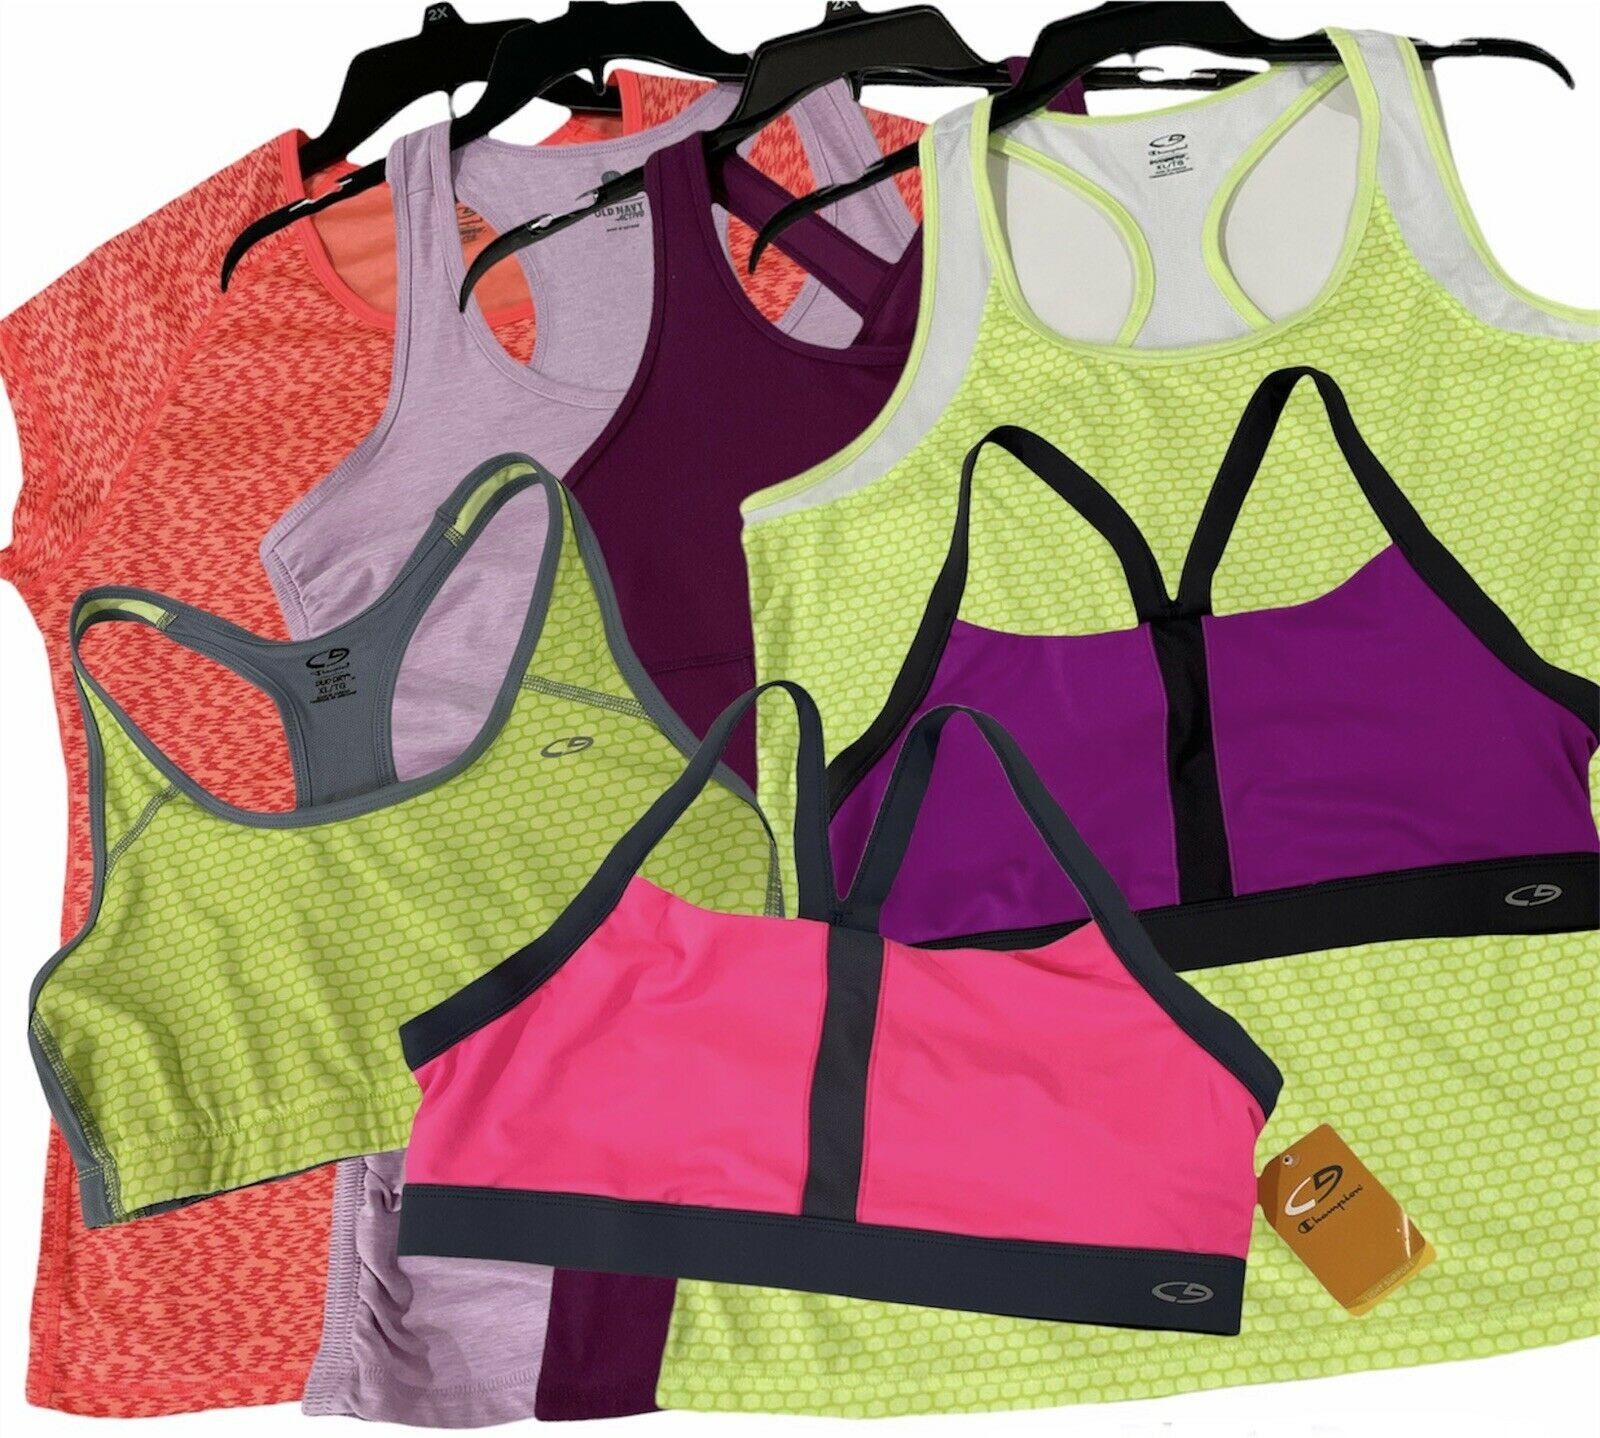 Lot of 7 - C9 Champion Old Navy Women's Activewear Tops Sport Bras - Size XL